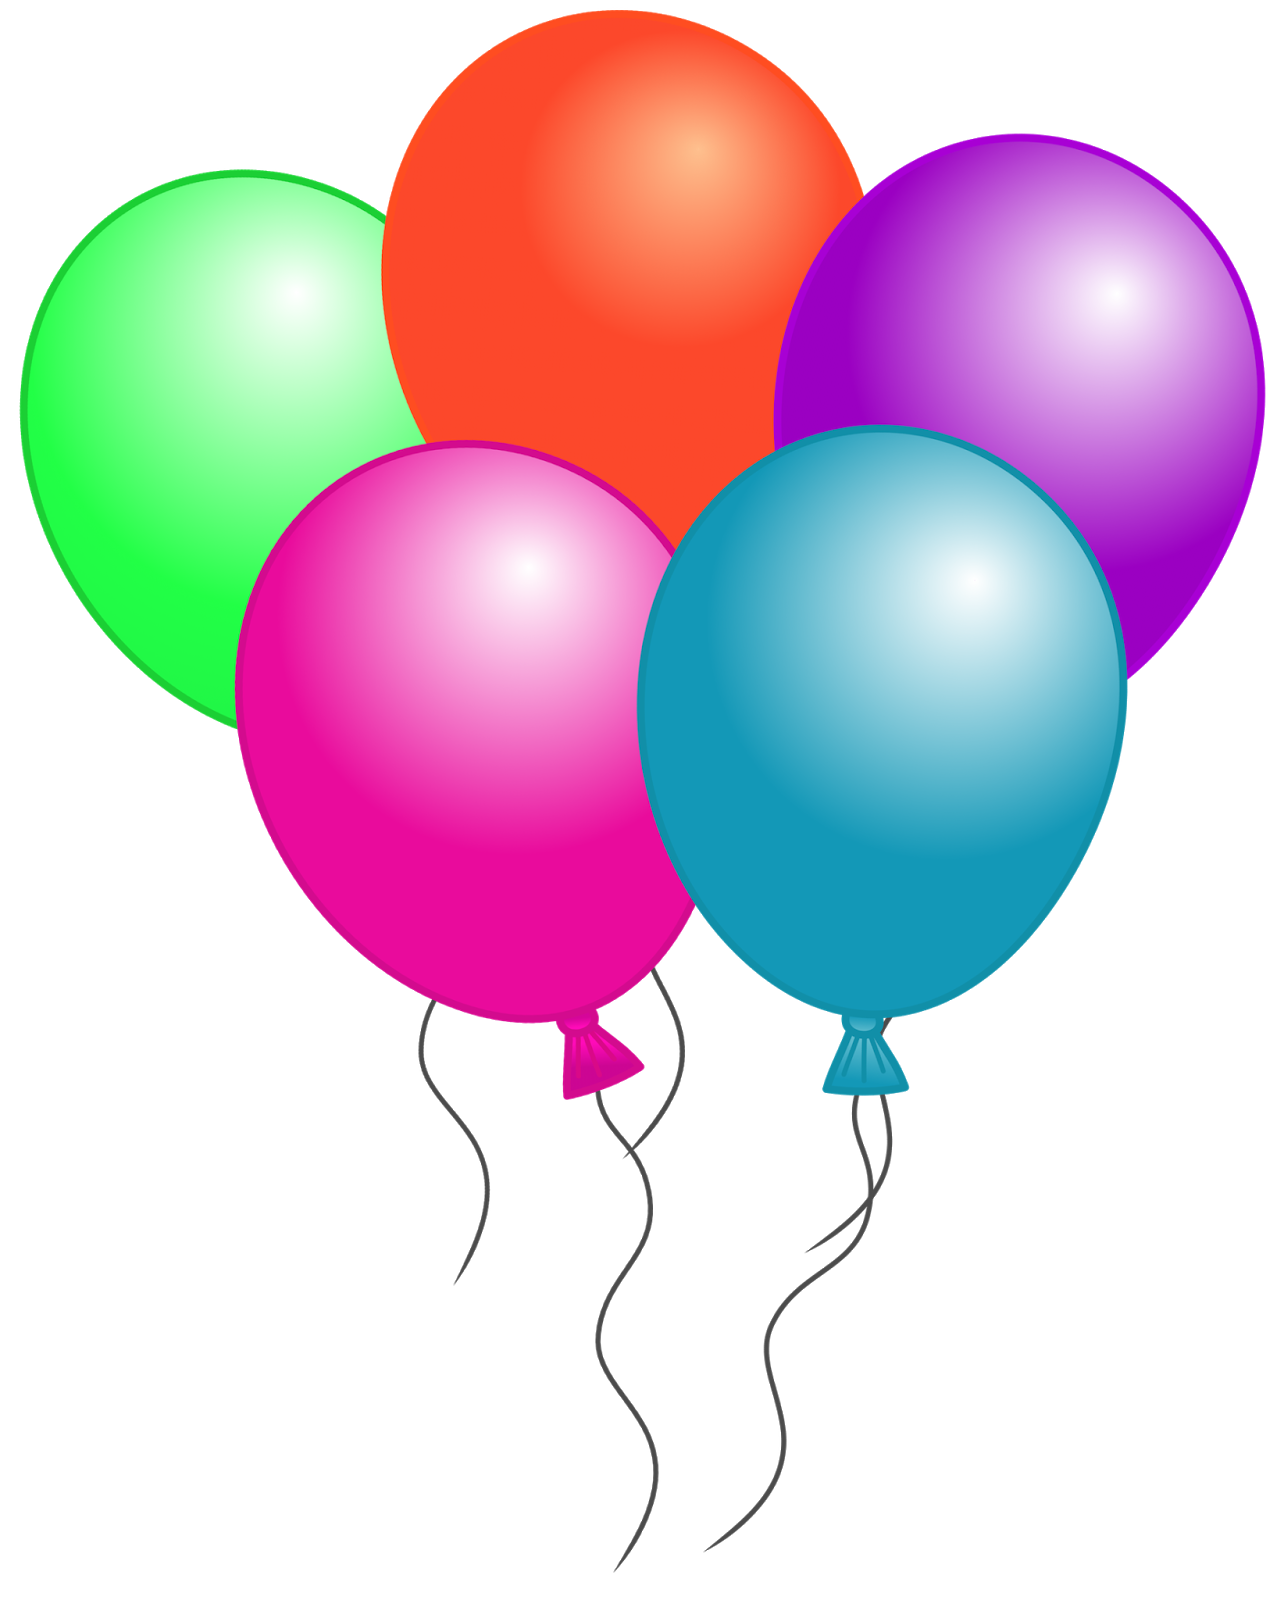 Birthday Balloons Clipart | Clipart Panda - Free Clipart Images